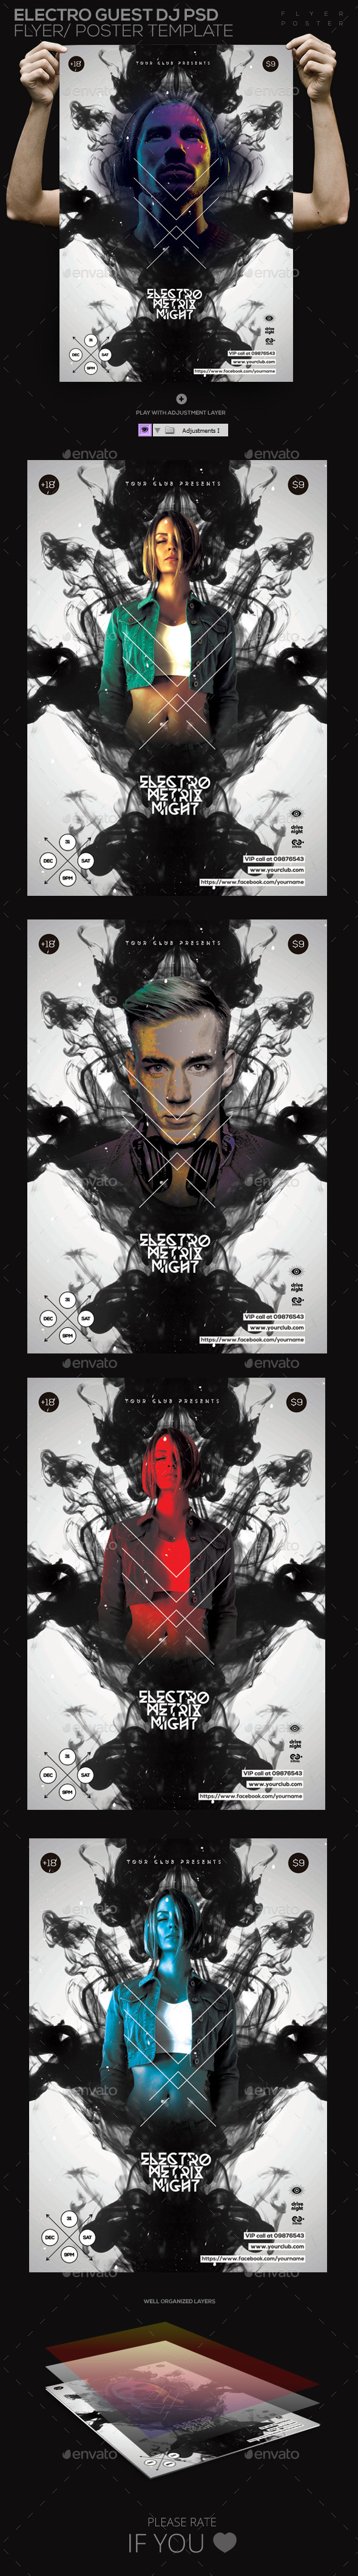 GraphicRiver Electro Guest Dj PSD Flyer Poster Template 11032100